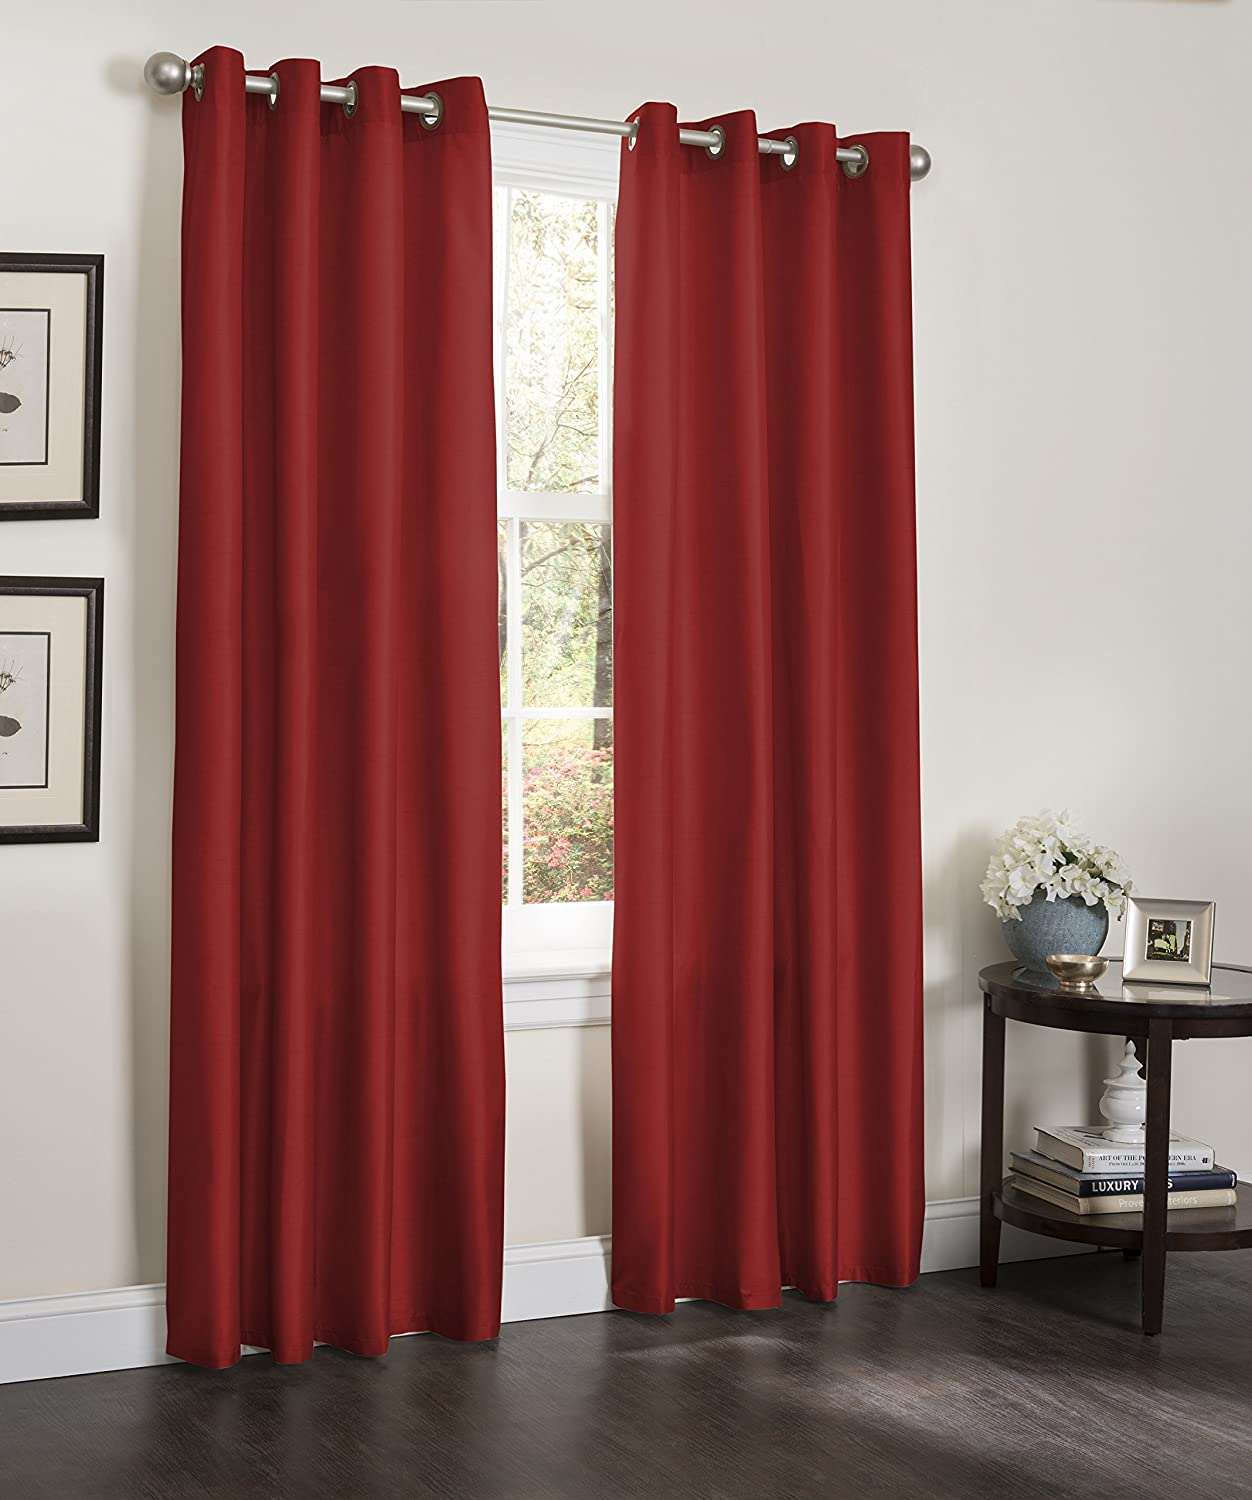 Red and cream window curtains - Amazon Com Blackout Window Curtain 55 X 84 Faux Silk Thermal Insulated Grommet Top Lined Heavy Thick Panel 1 Panel Black Home Kitchen